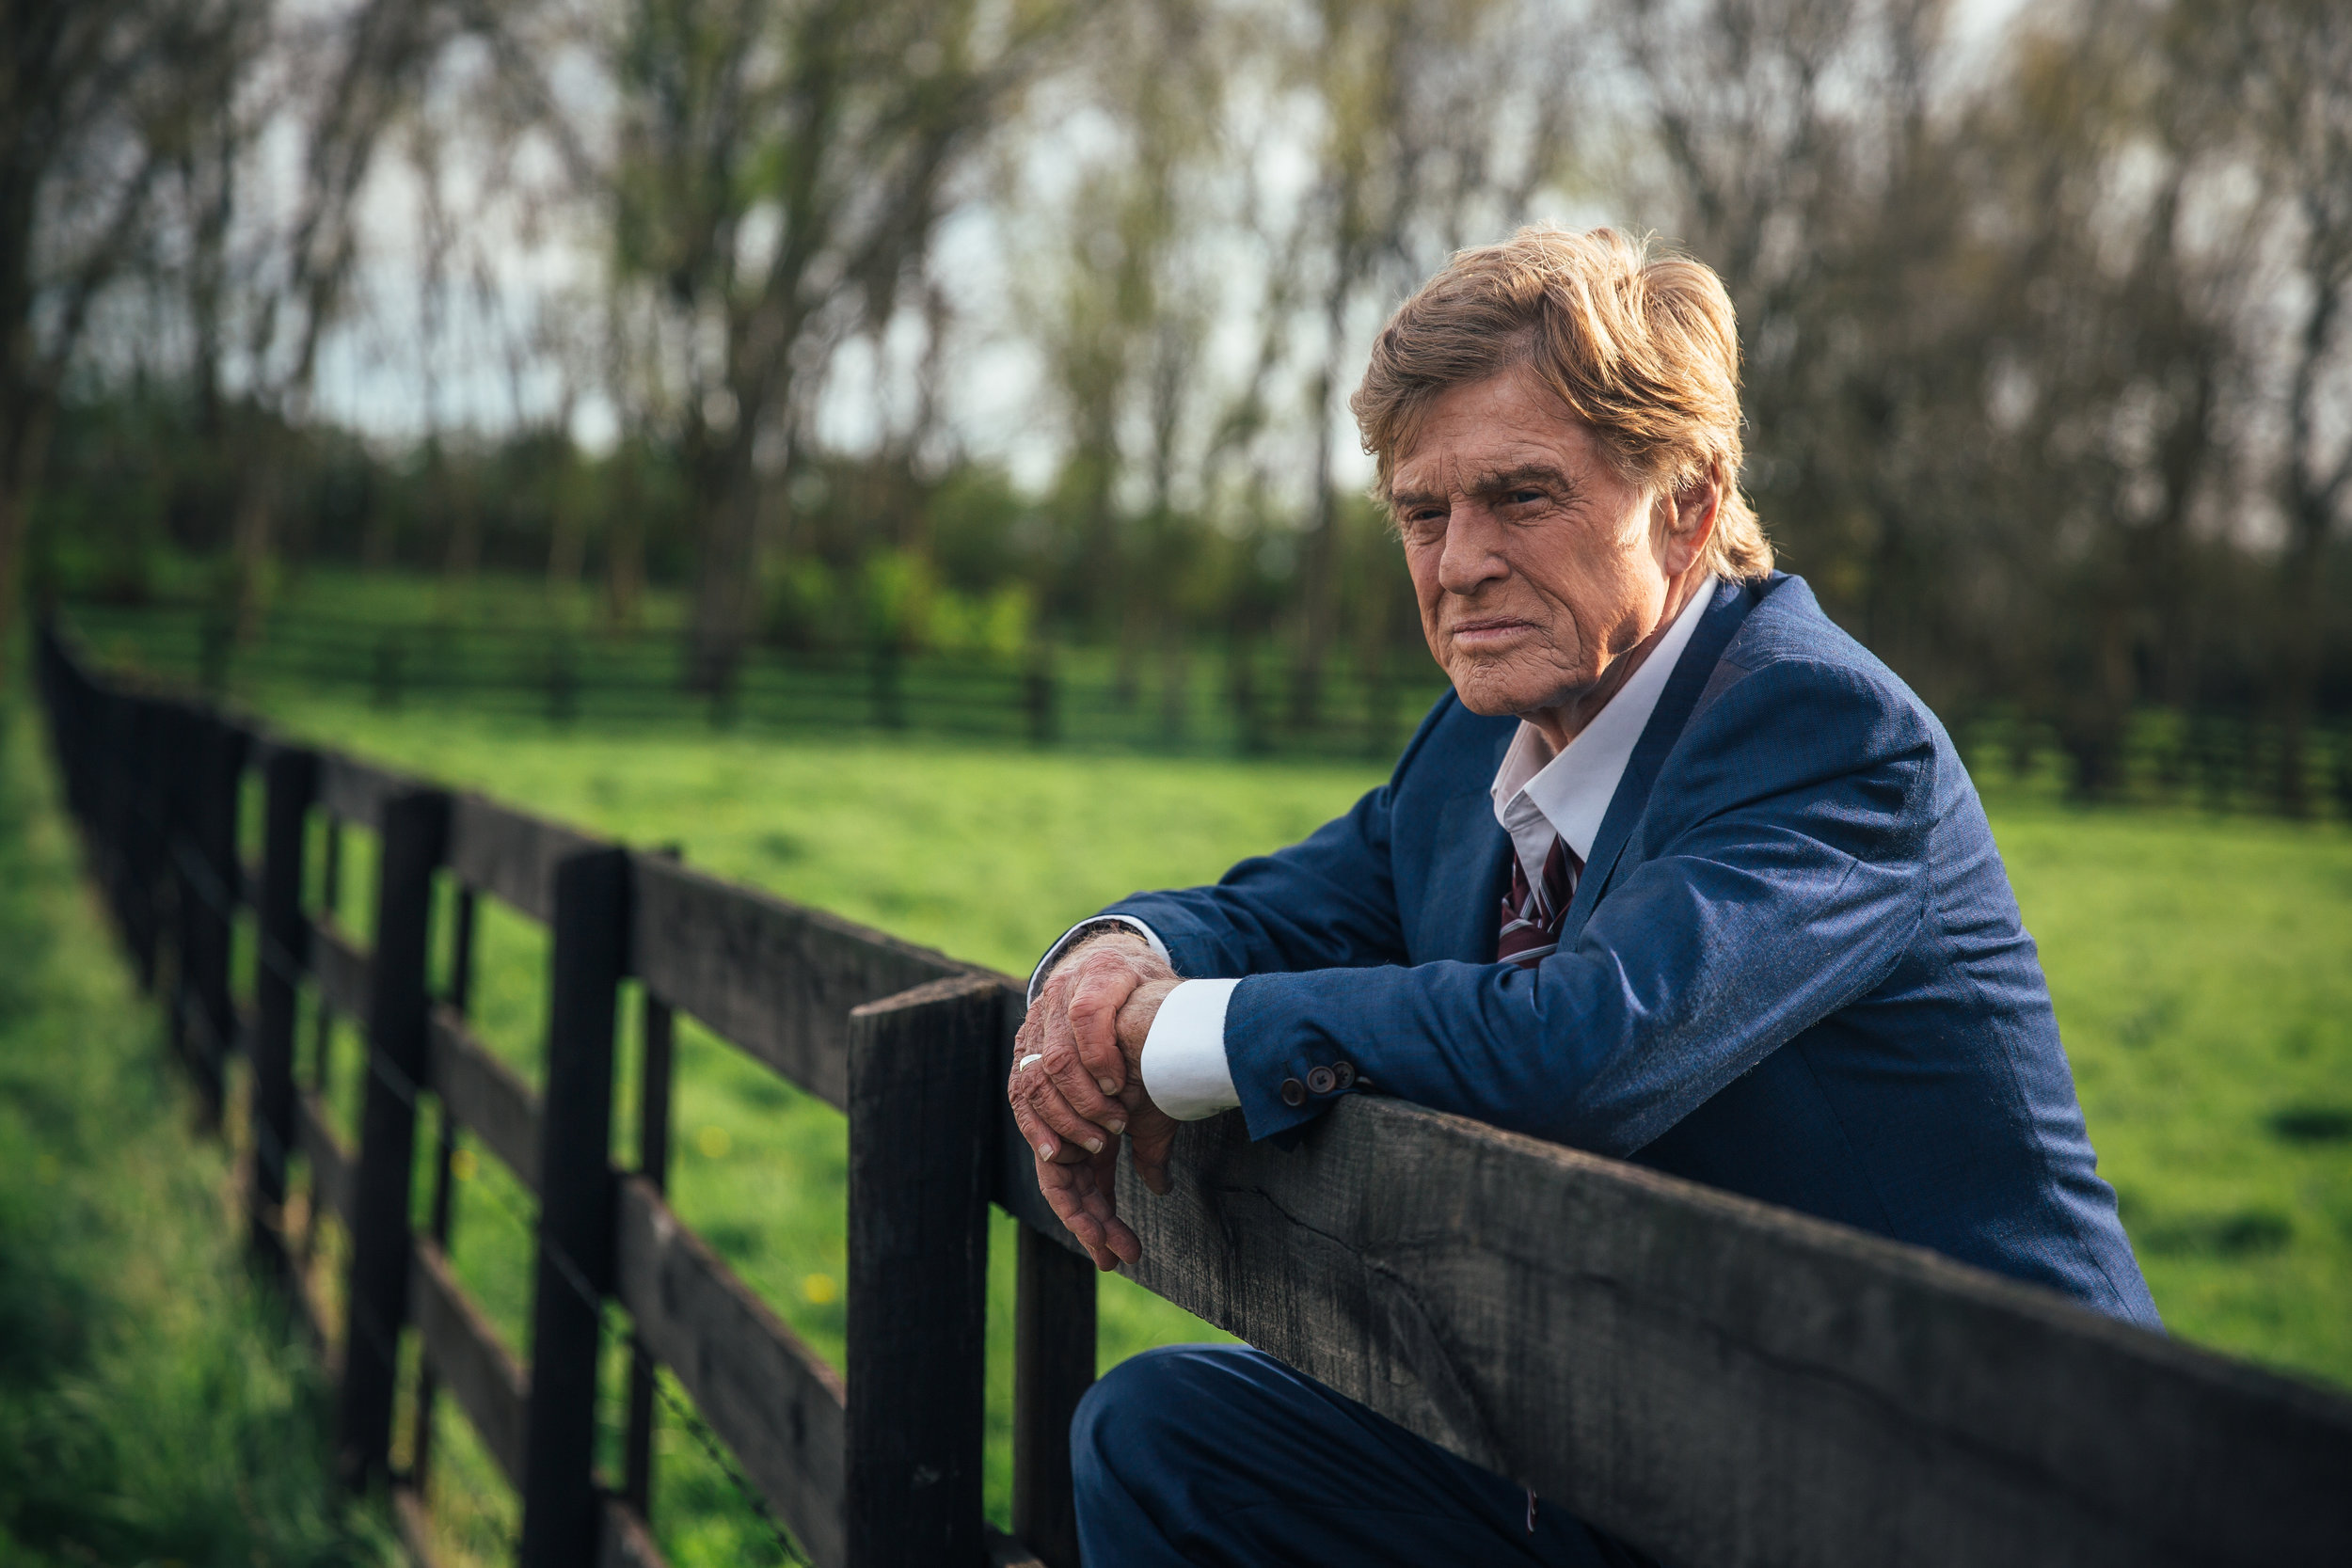 """Robert Redford plays career criminal Forrest Tucker in """"The Old Man & the Gun,"""" which Redford has said will be his last acting role. (Photo courtesy Fox Searchlight Pictures)"""